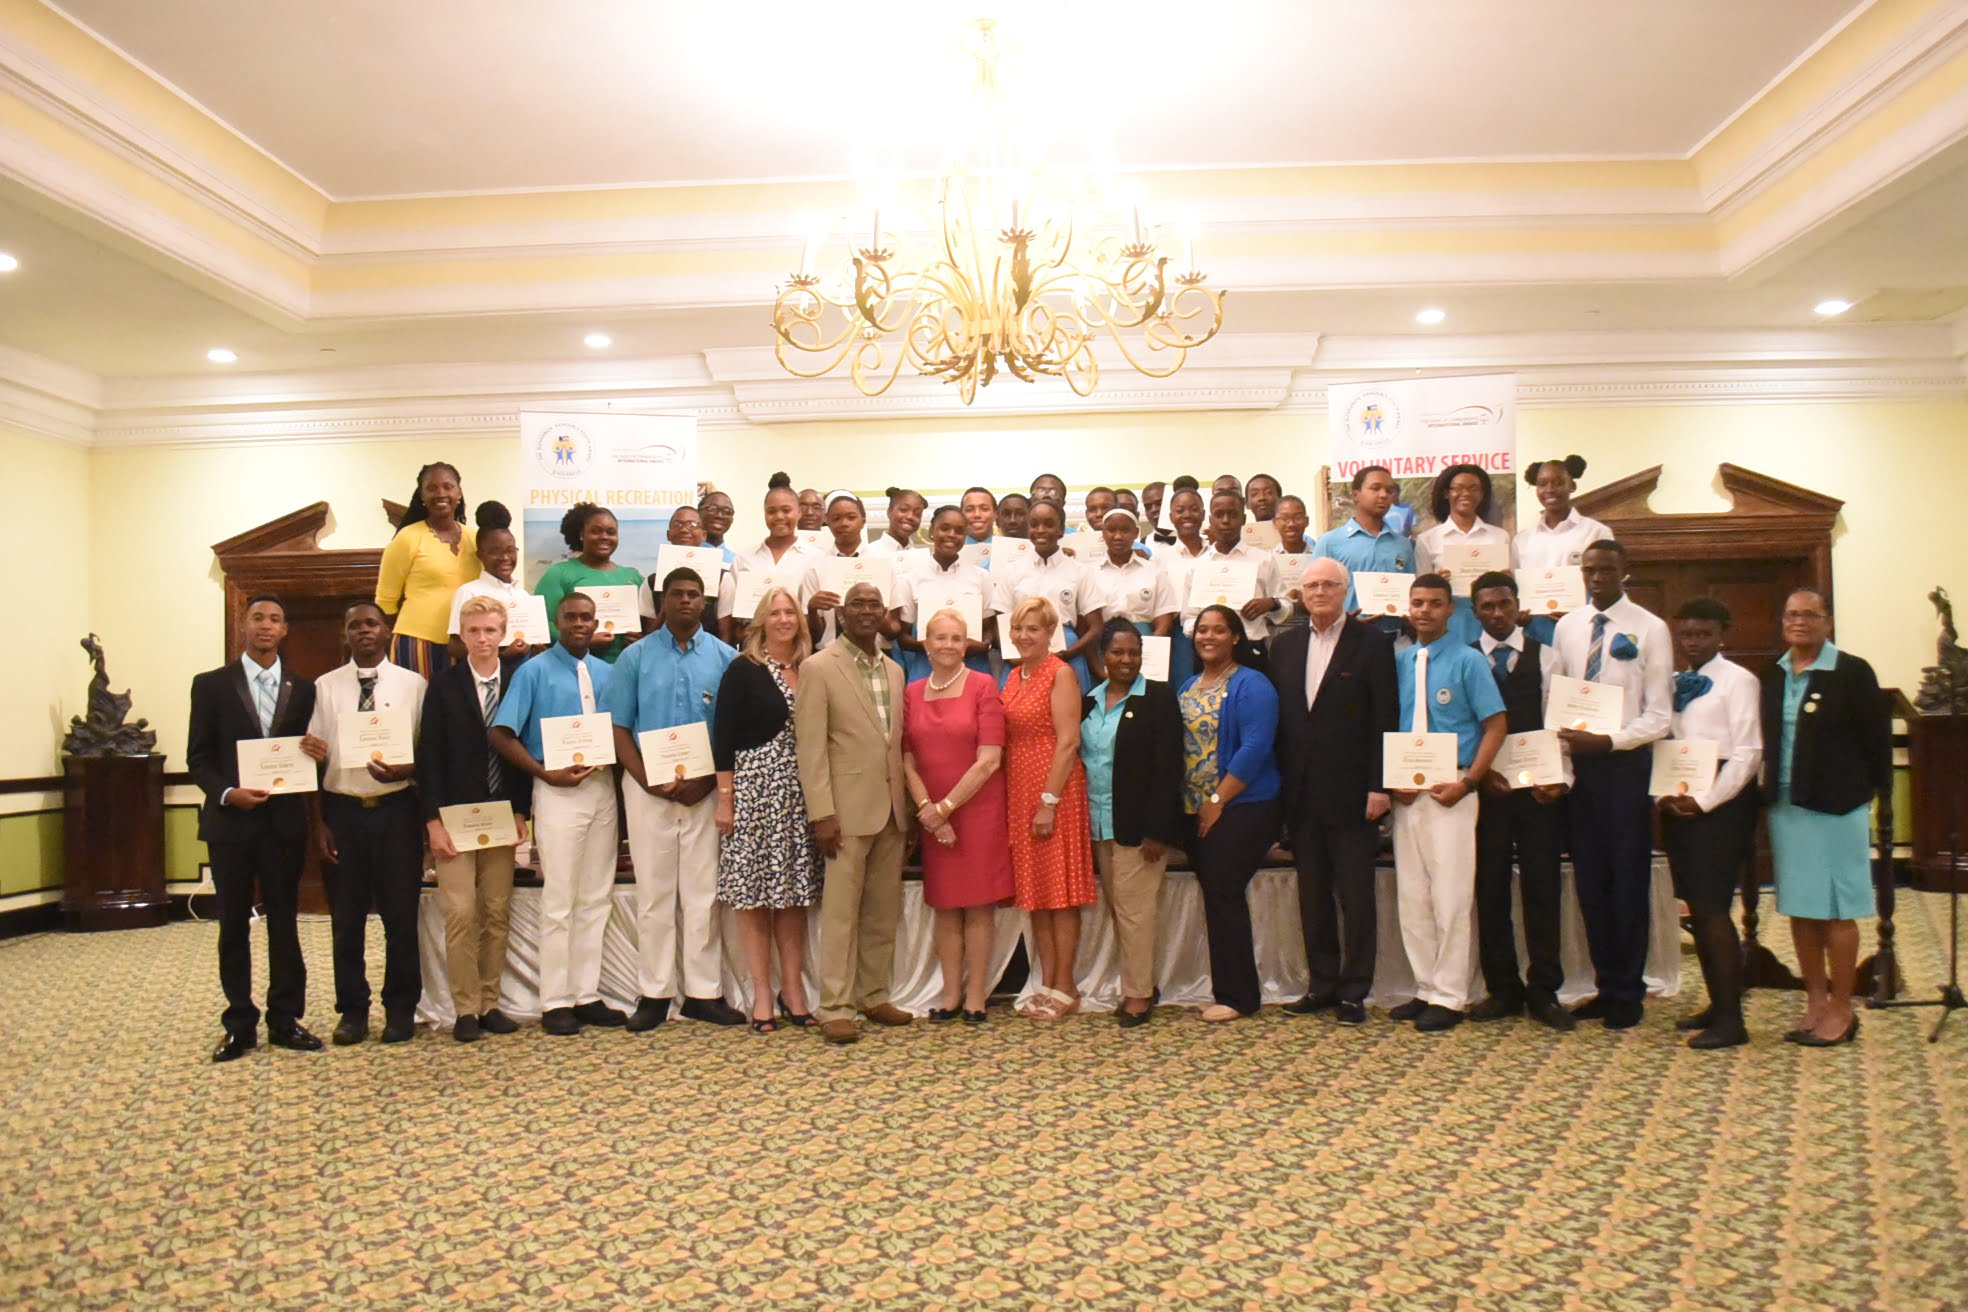 GGYA ceremony recognizes 72 young persons